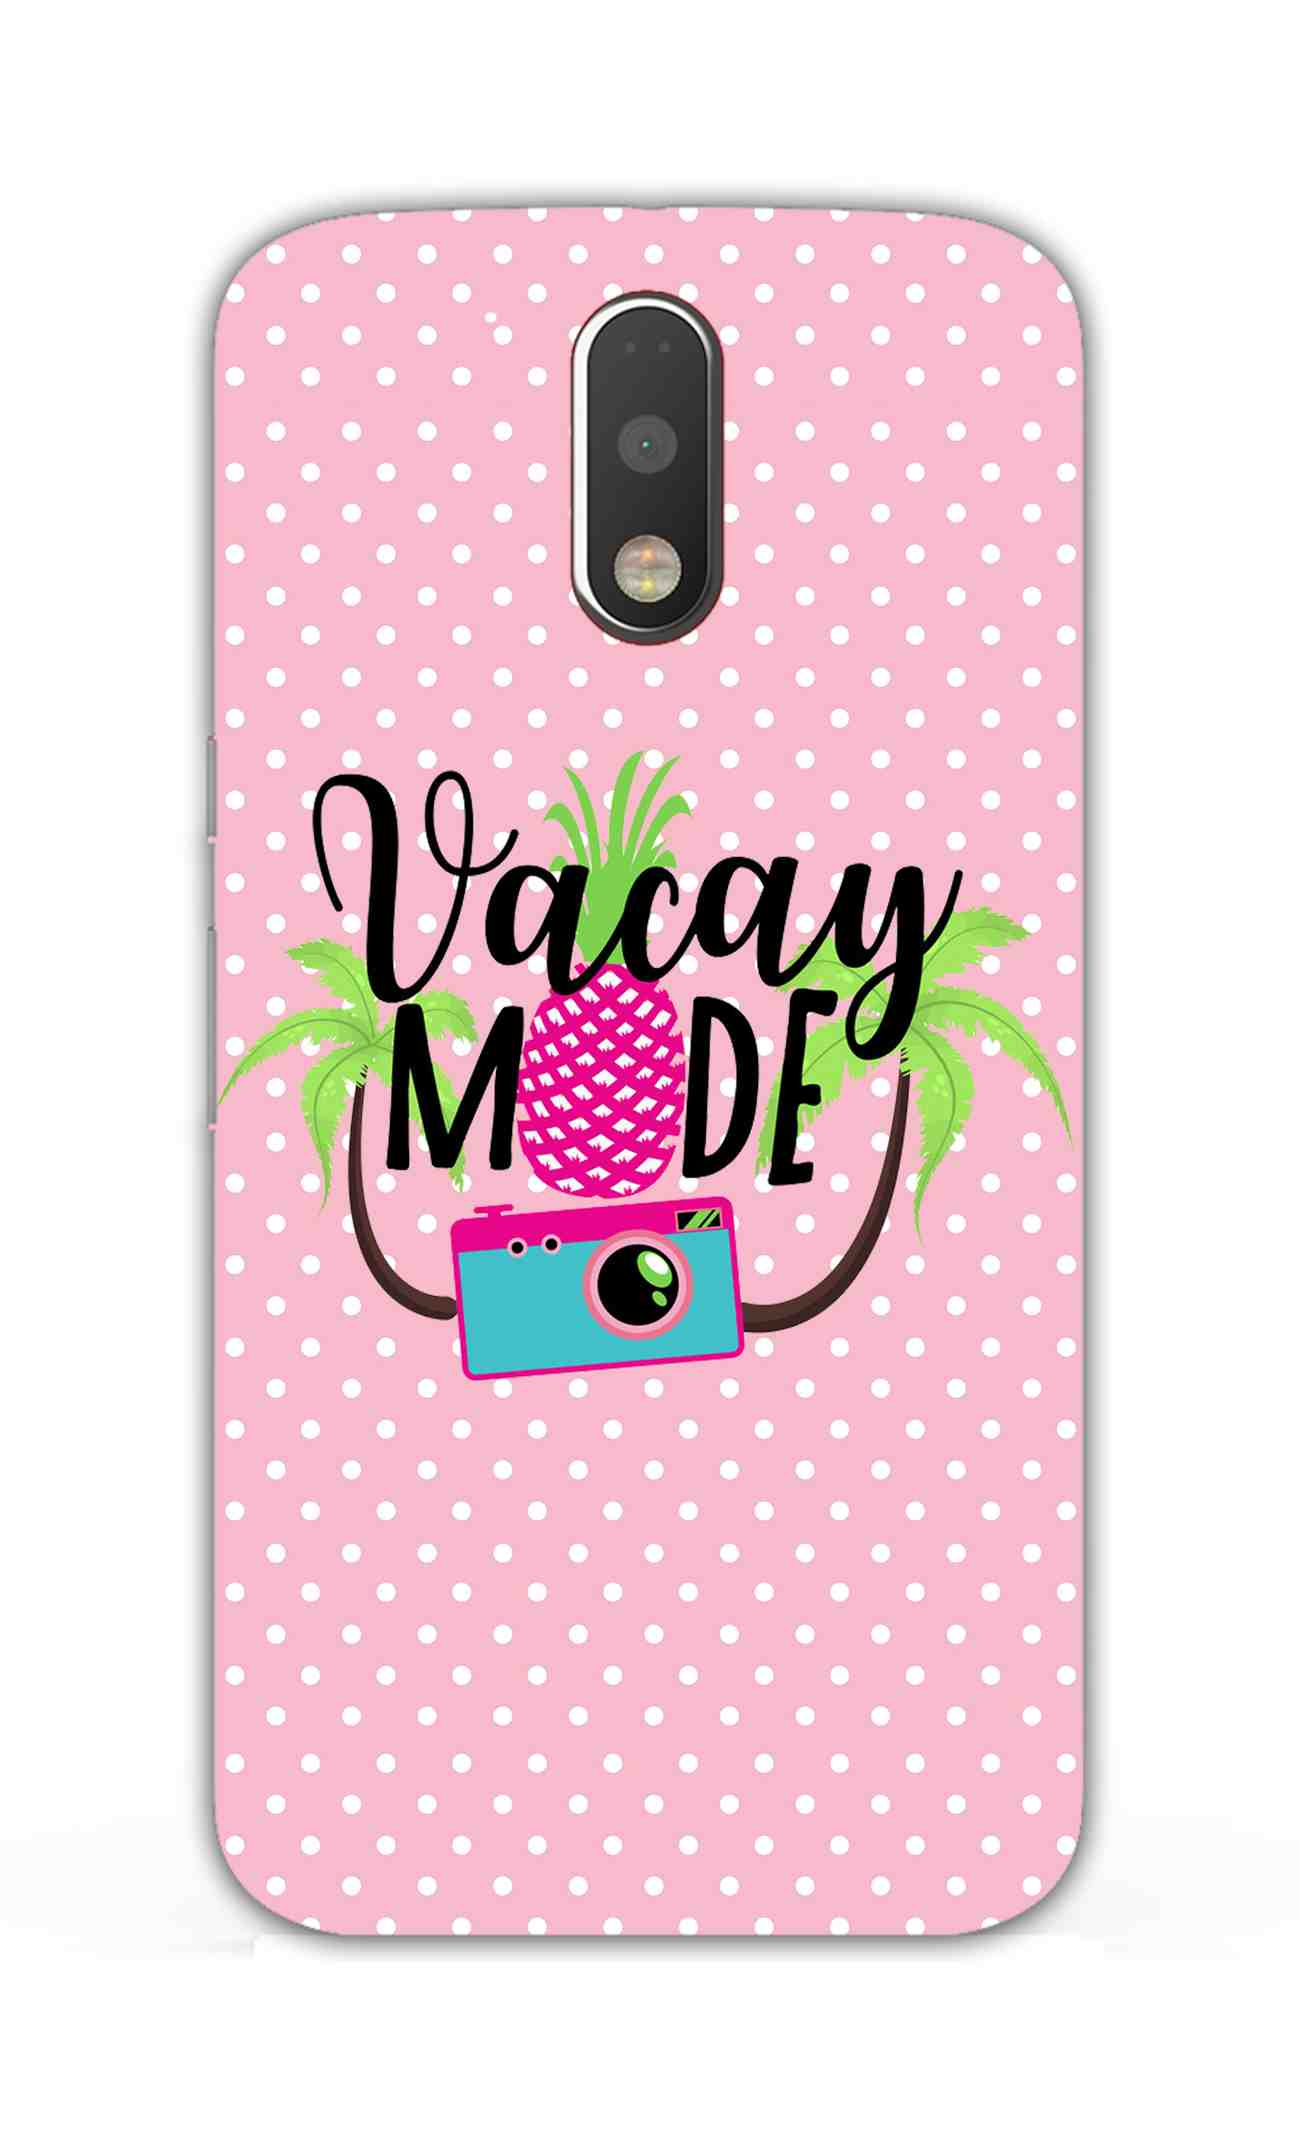 Vacay Mode With Cute White Dots Typography Moto G4 Plus Mobile Cover Case - MADANYU